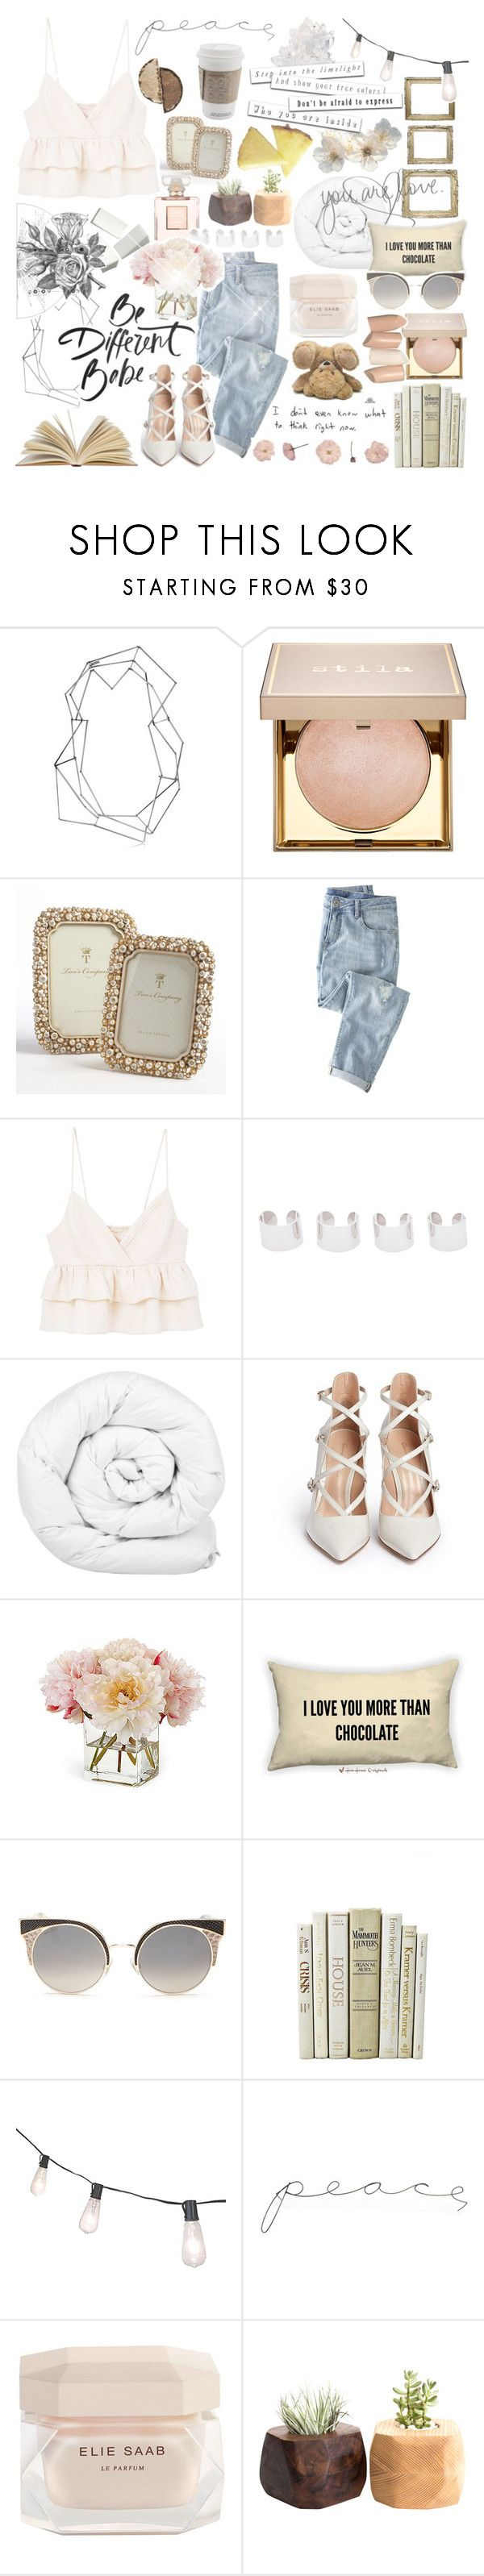 """""""*:・゚✧ you're no good for me ✧ *:・゚"""" by cherrrypop ❤ liked on Polyvore featuring beauty, BANCI GIOIELLI, Stila, Chanel, Wrap, MANGO, Maison Margiela, Brinkhaus, Gianvito Rossi and Diane James"""